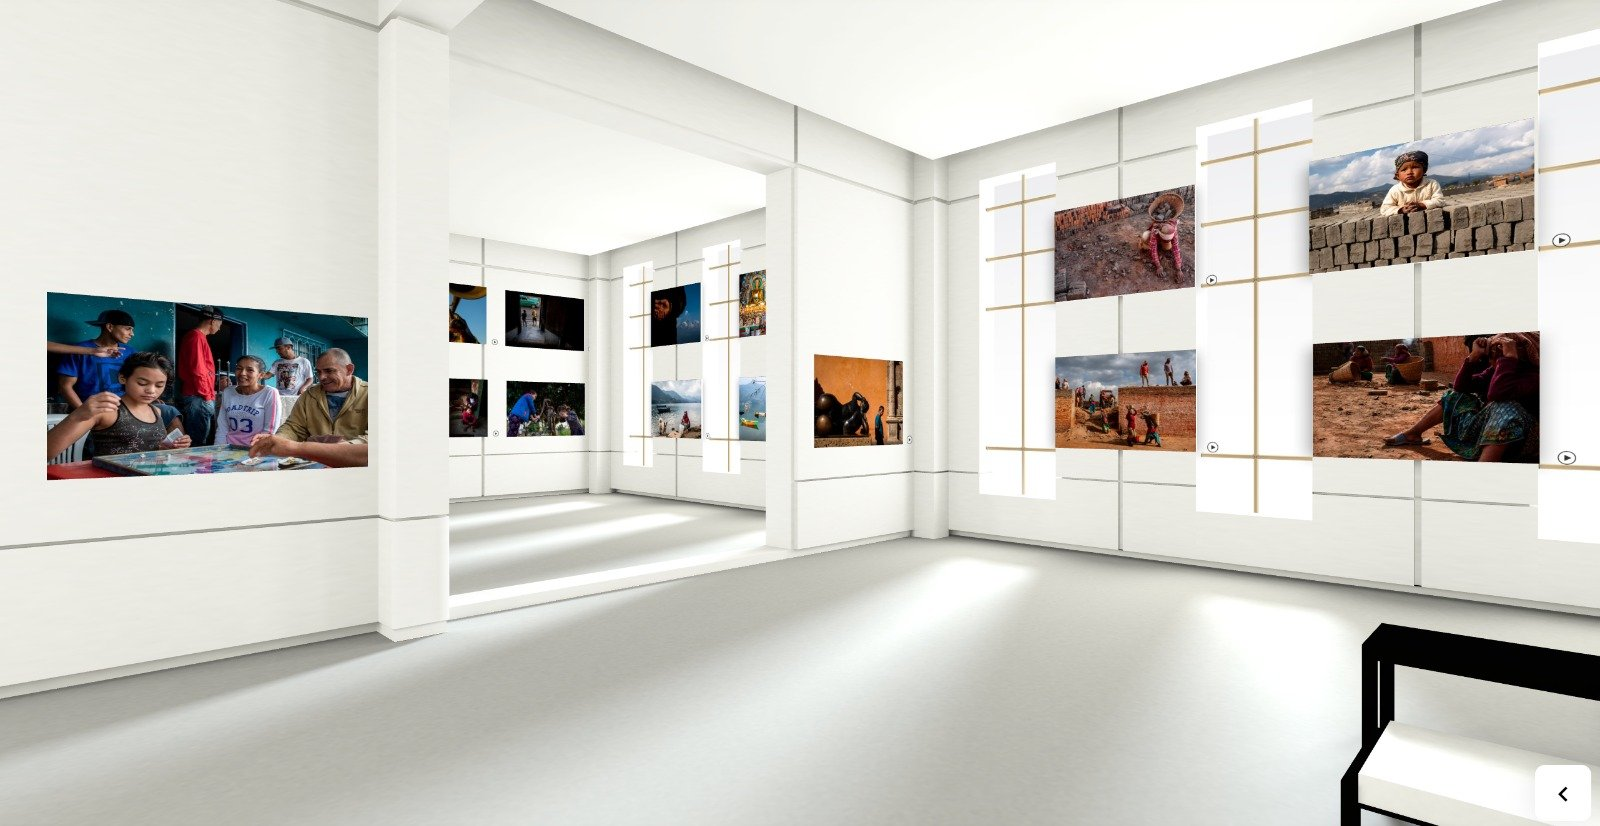 Creating a Virtual Photo Exhibition in the Time of COVID